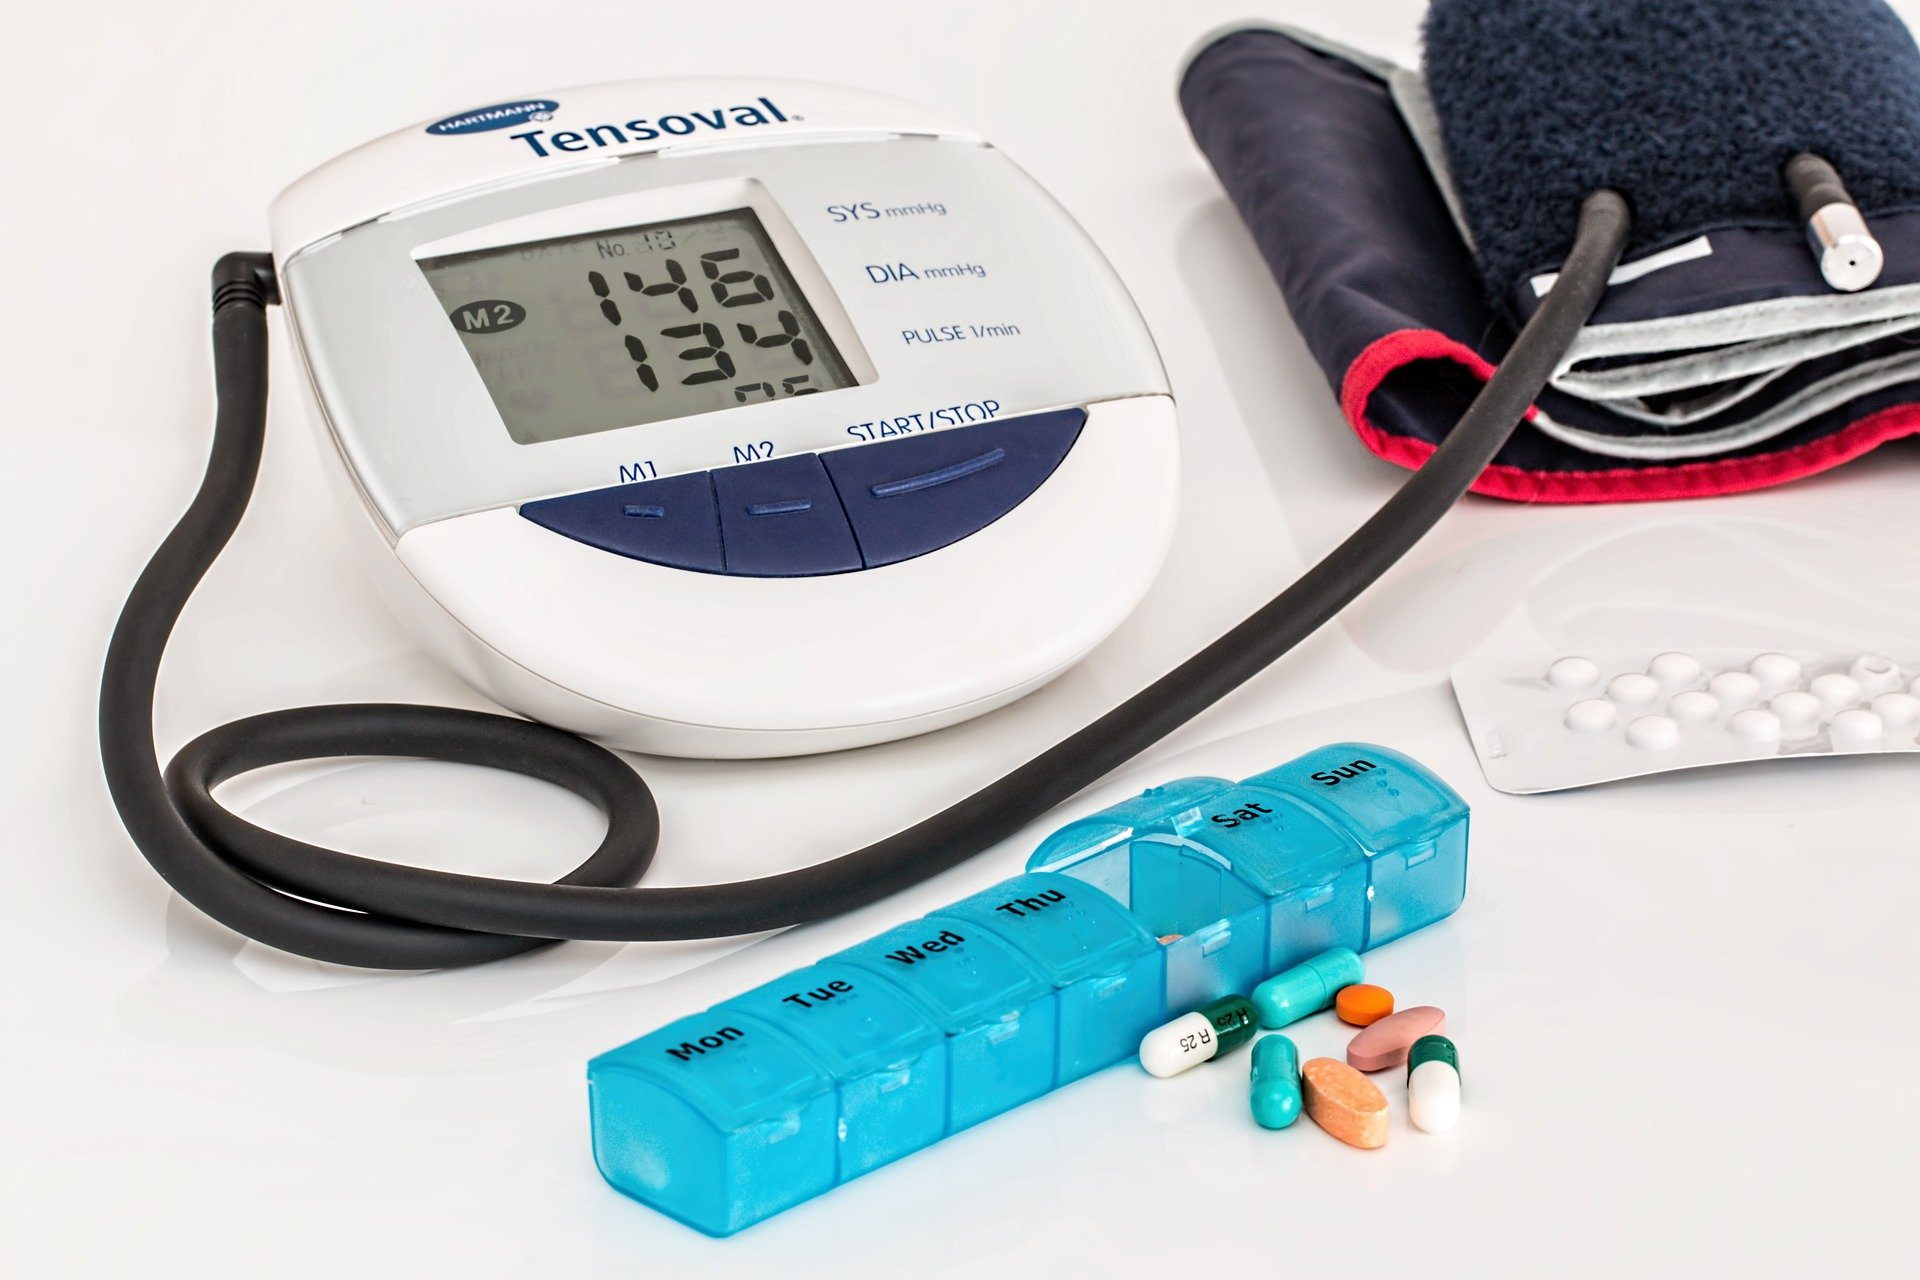 How To Reduce The Blood Pressure And Stay Healthy?